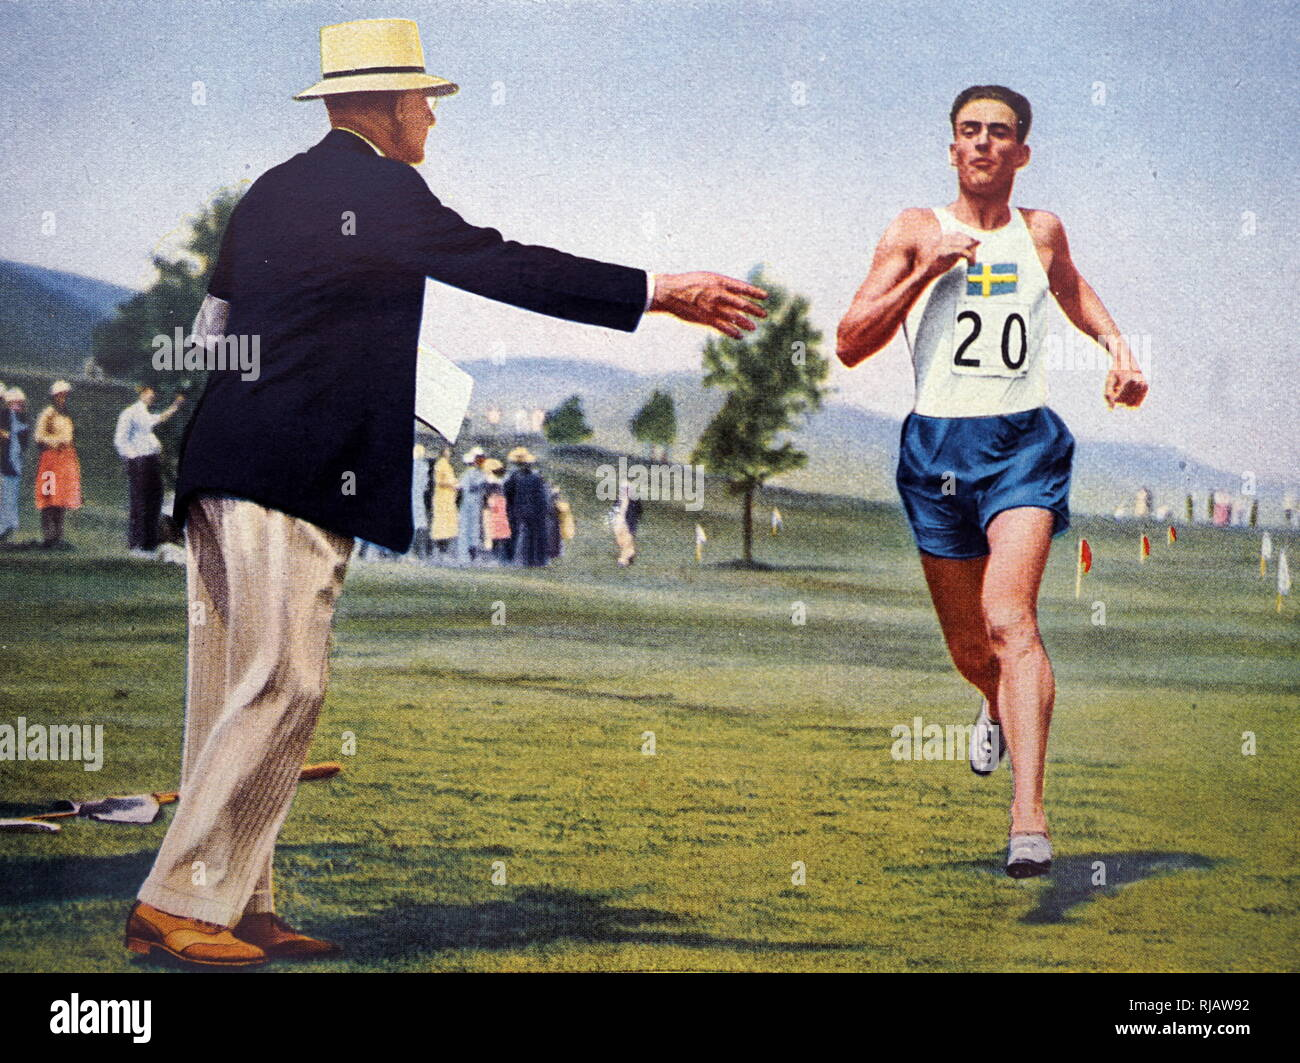 Photograph of Johan Gabriel Oxenstierna af Korsholm och Wasa (1899 - 1995) at the 1932 Olympic games. He took gold for Sweden in the individual pentathlon. - Stock Image